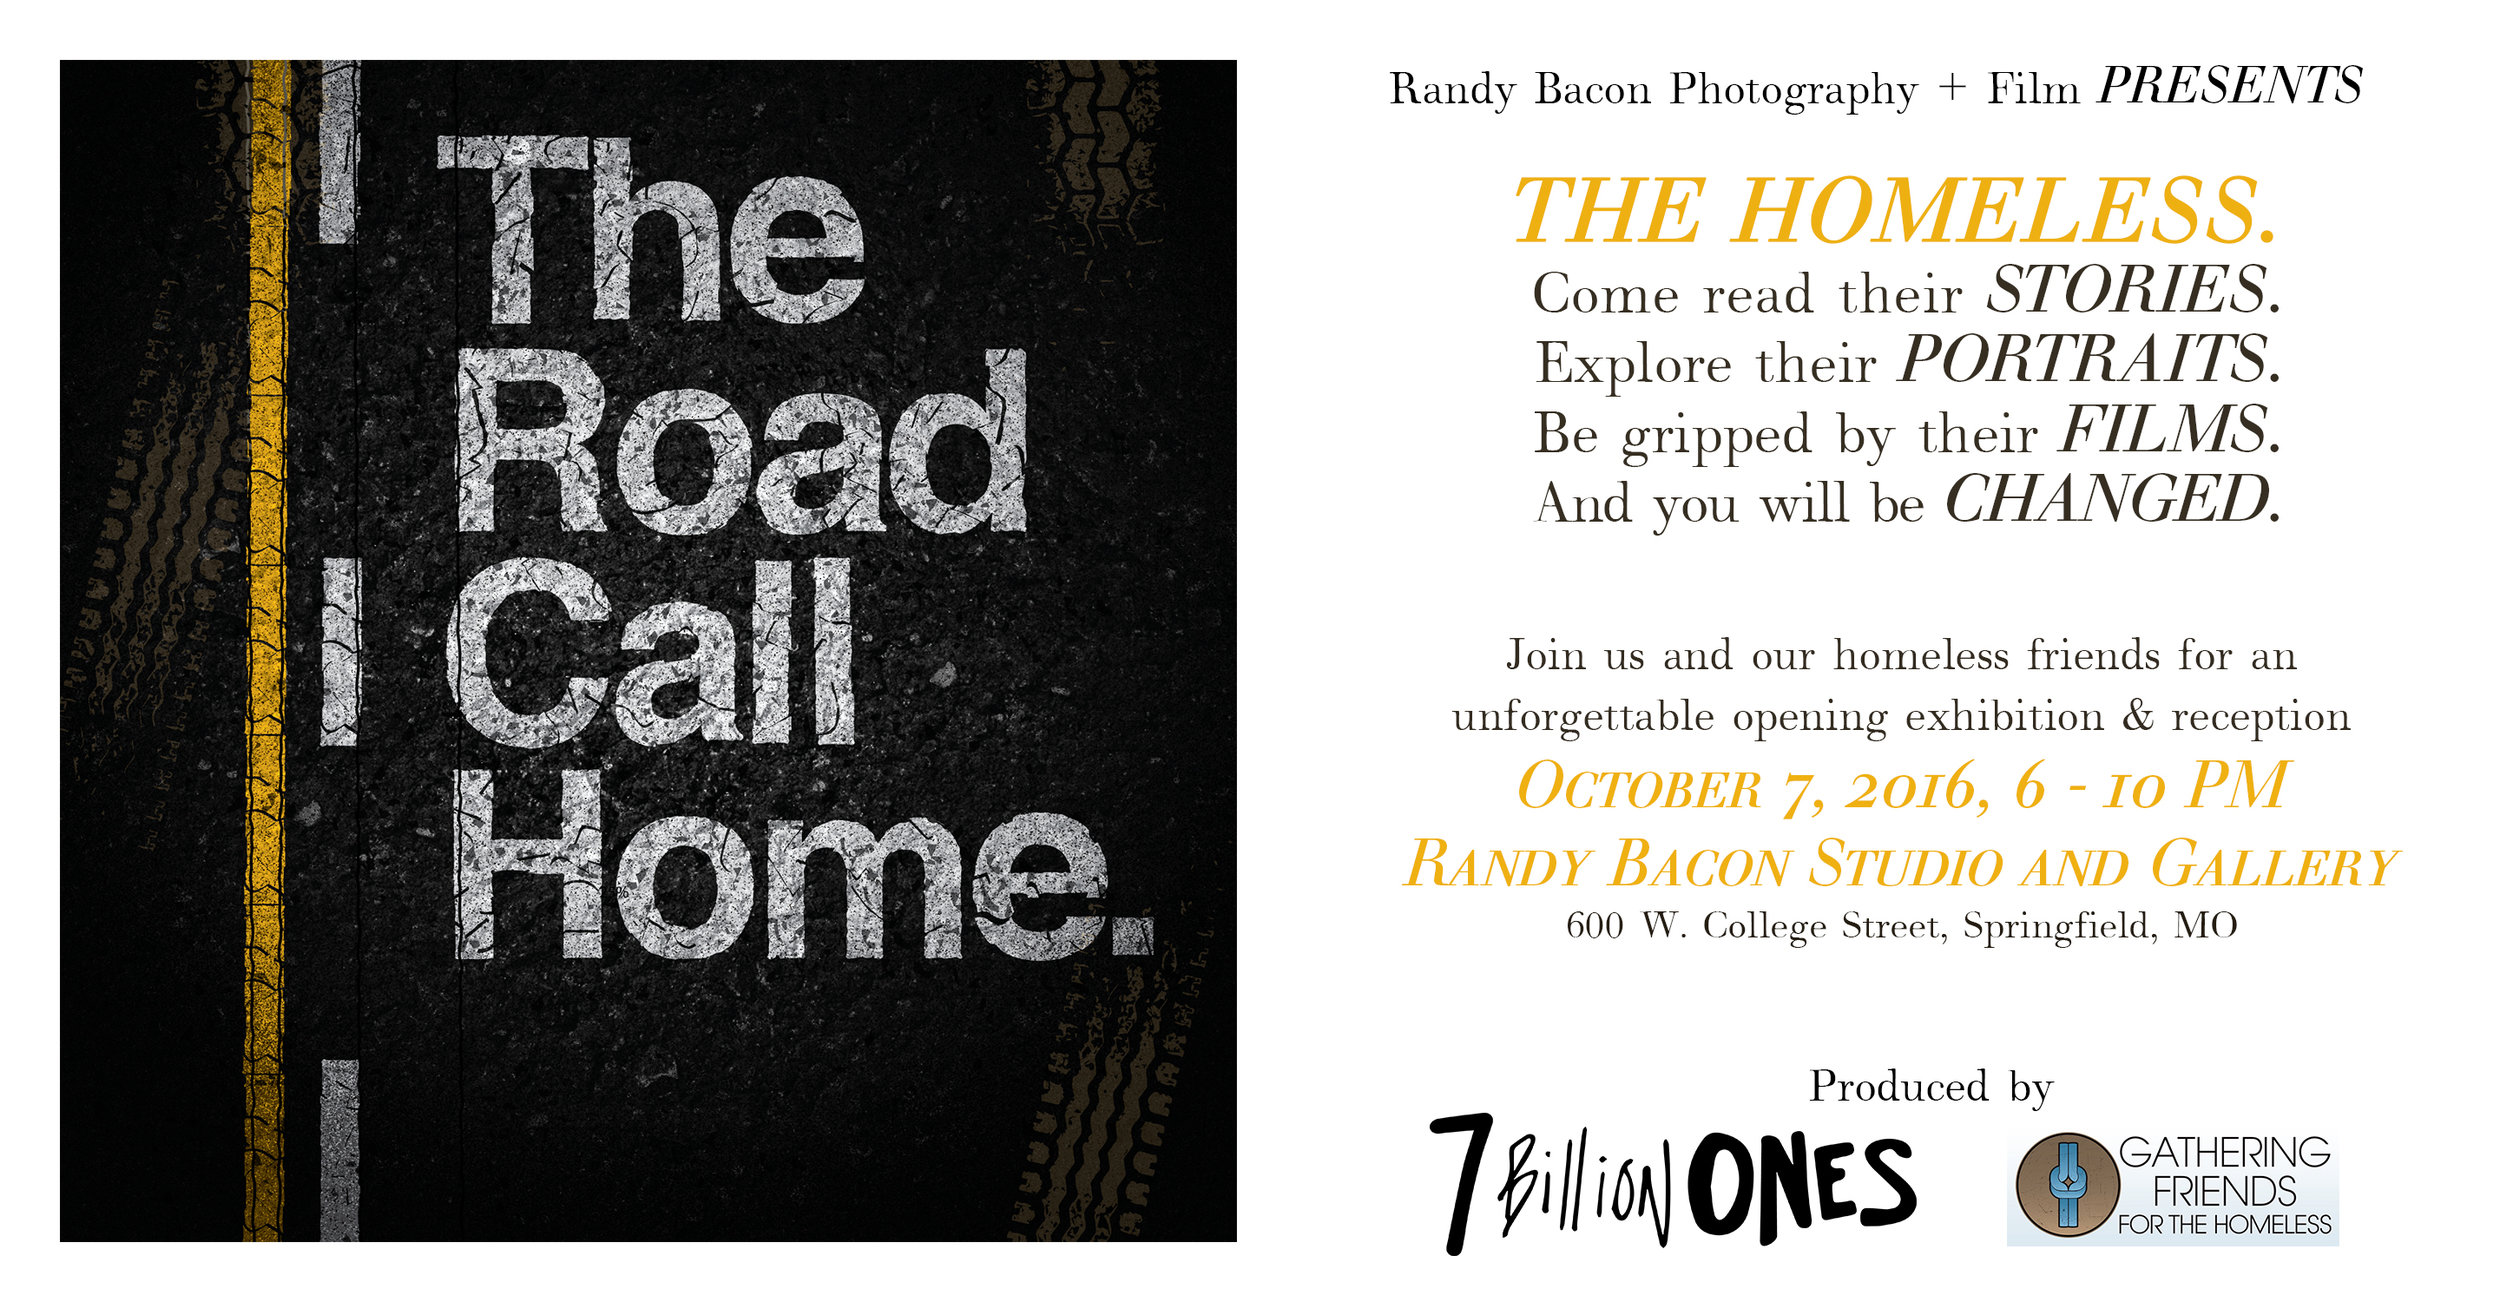 The Opening Reception for The Road I Call Home --- October 7, from 6 to 10 PM